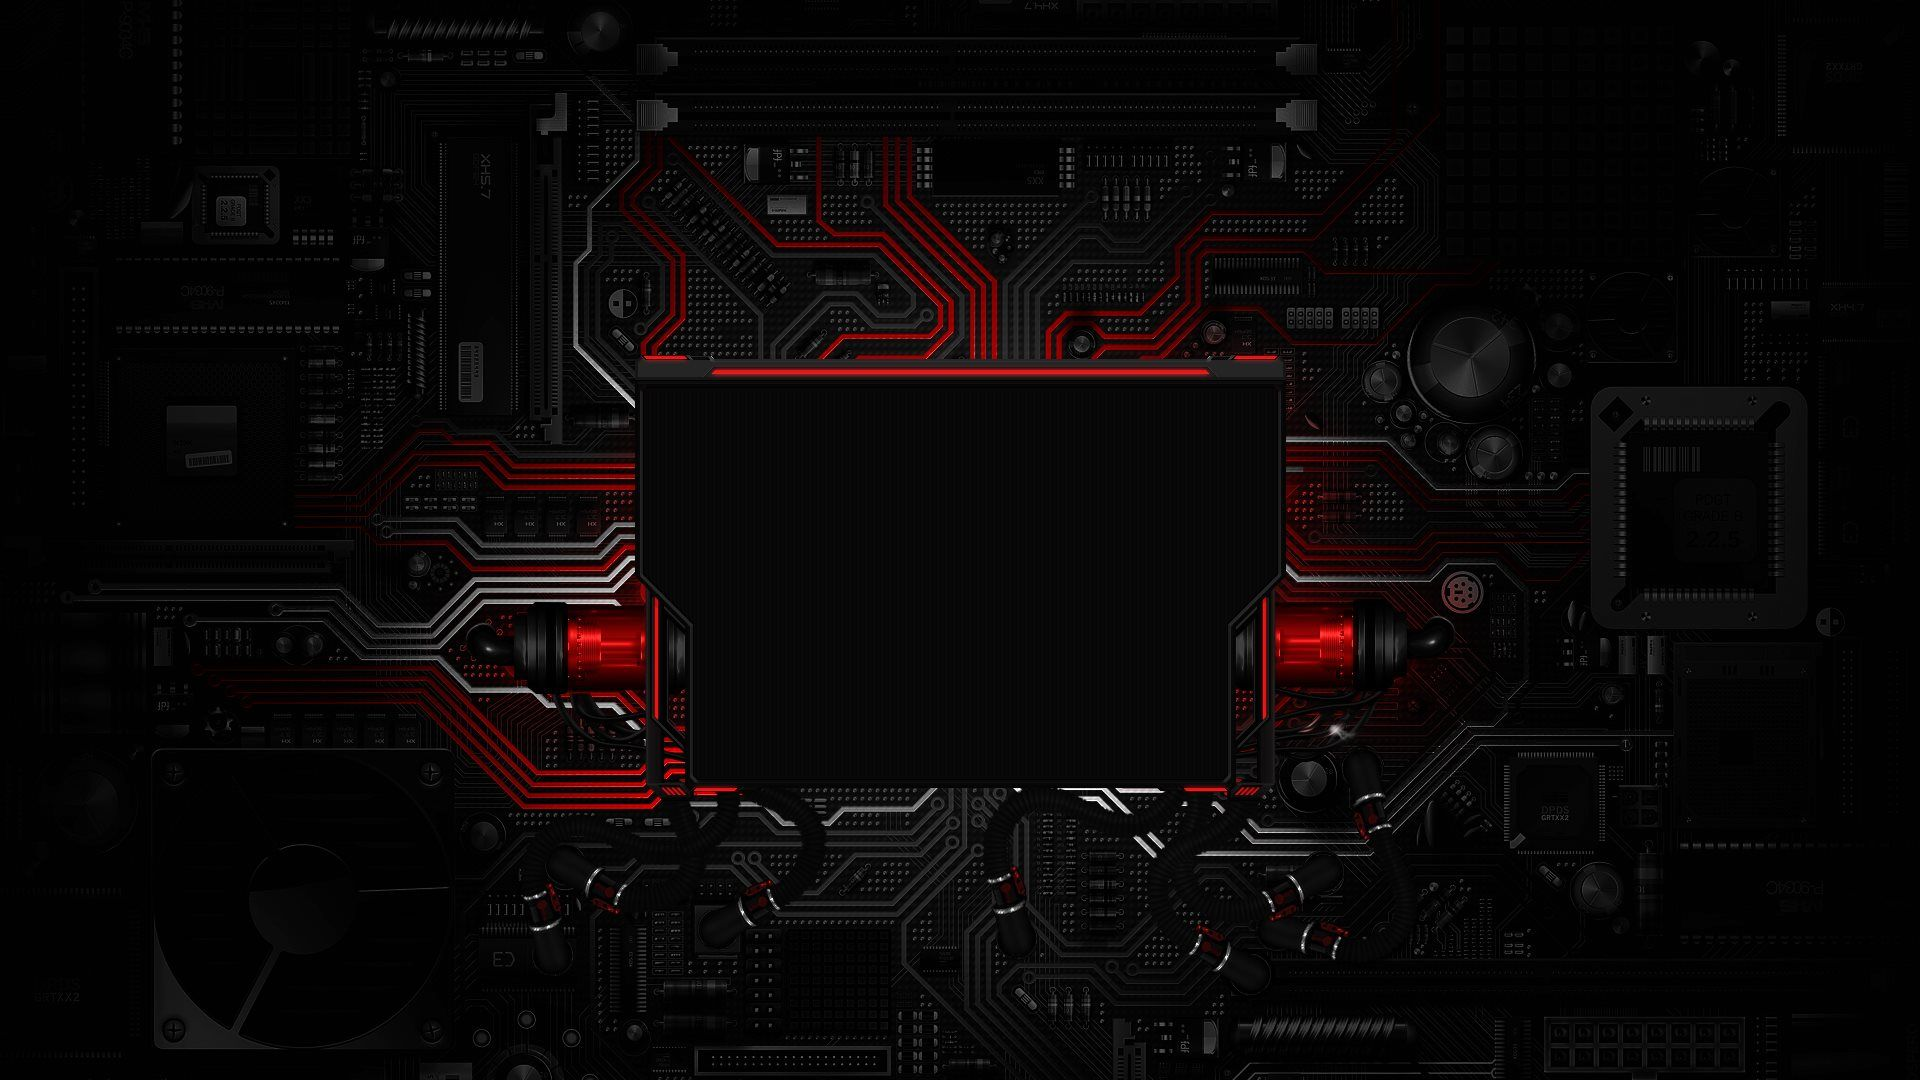 Engineering And Technology Ultra Hd Wallpapers: Computer Tech Wallpaper 28